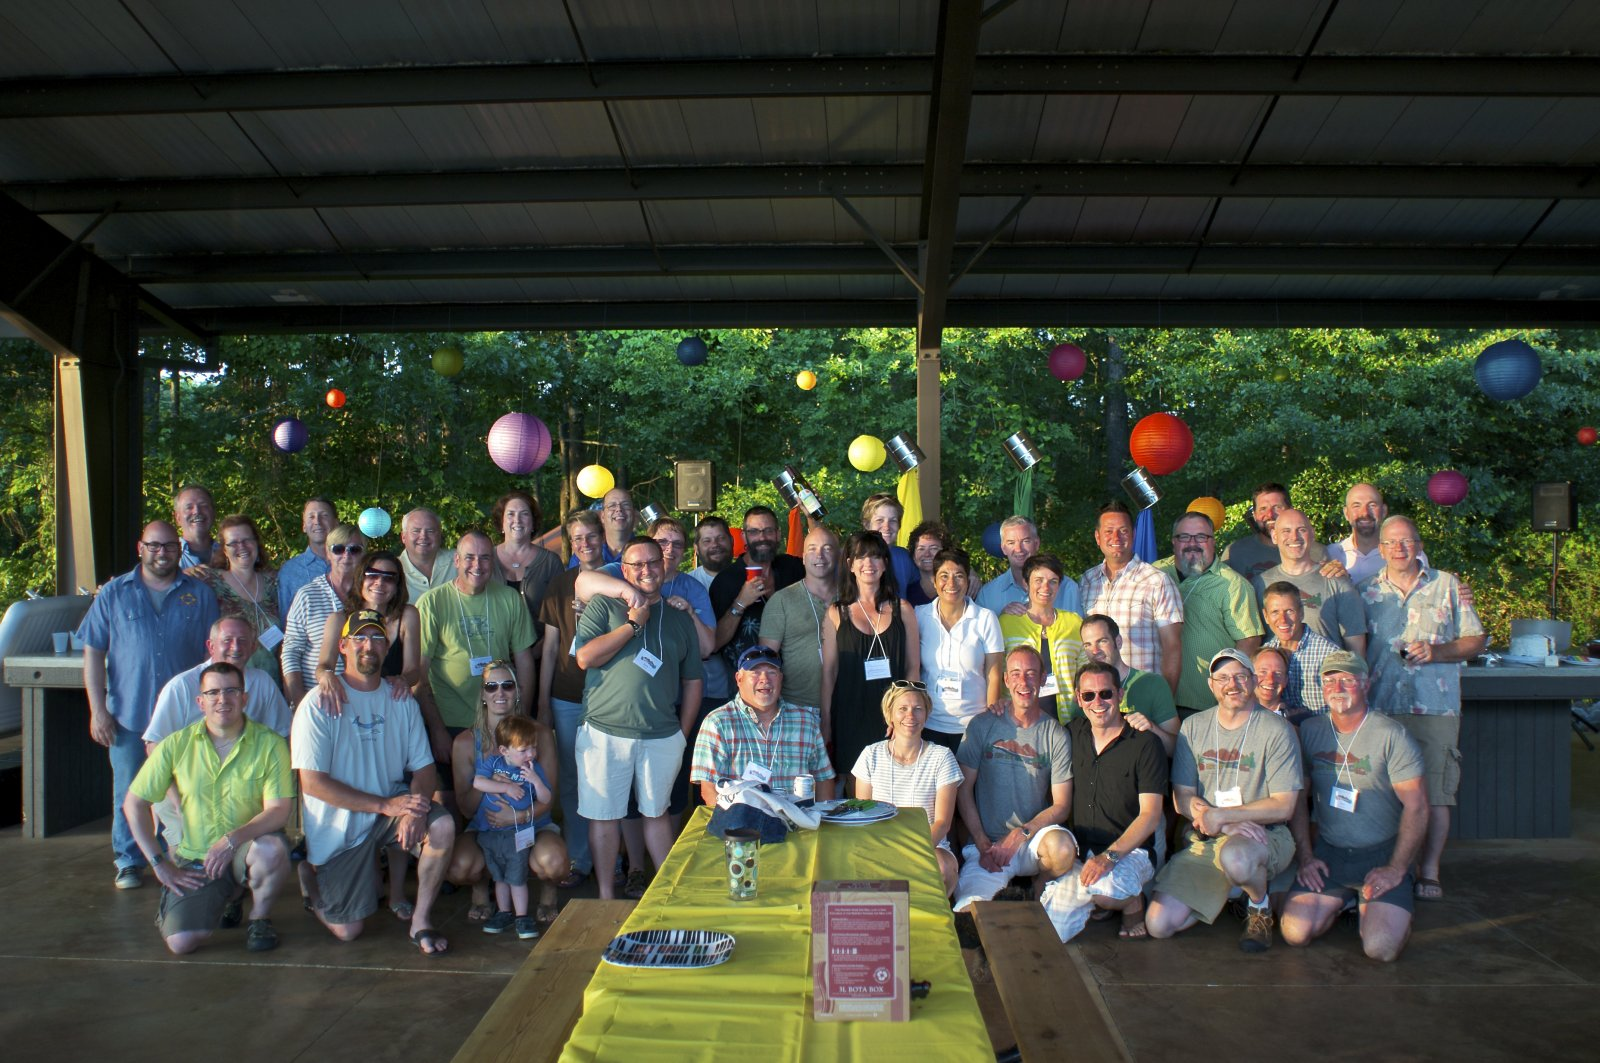 Click image for larger version  Name:Friends of Dorothy Group1_Jun2013.jpg Views:74 Size:326.9 KB ID:188006